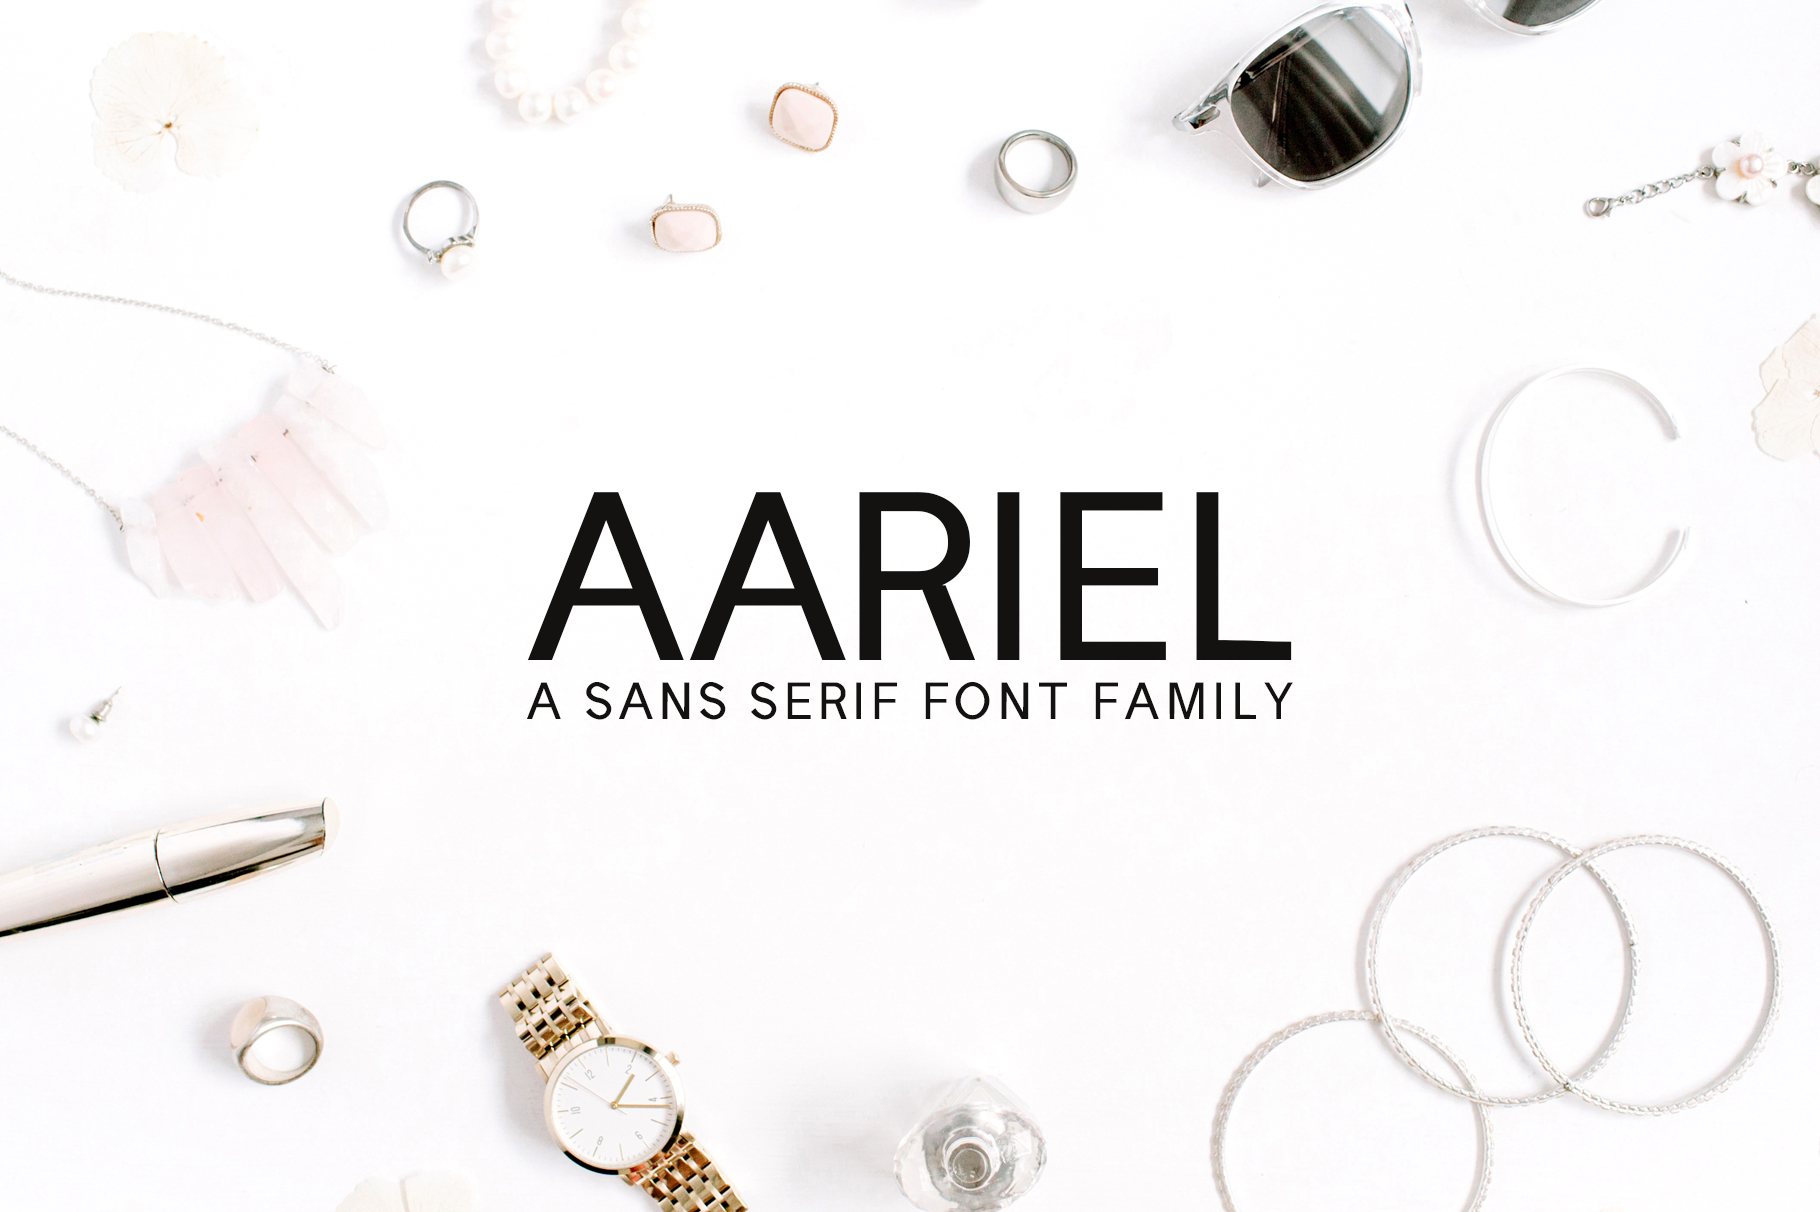 Aariel Sans Serif 7 Font Family Pack example image 1